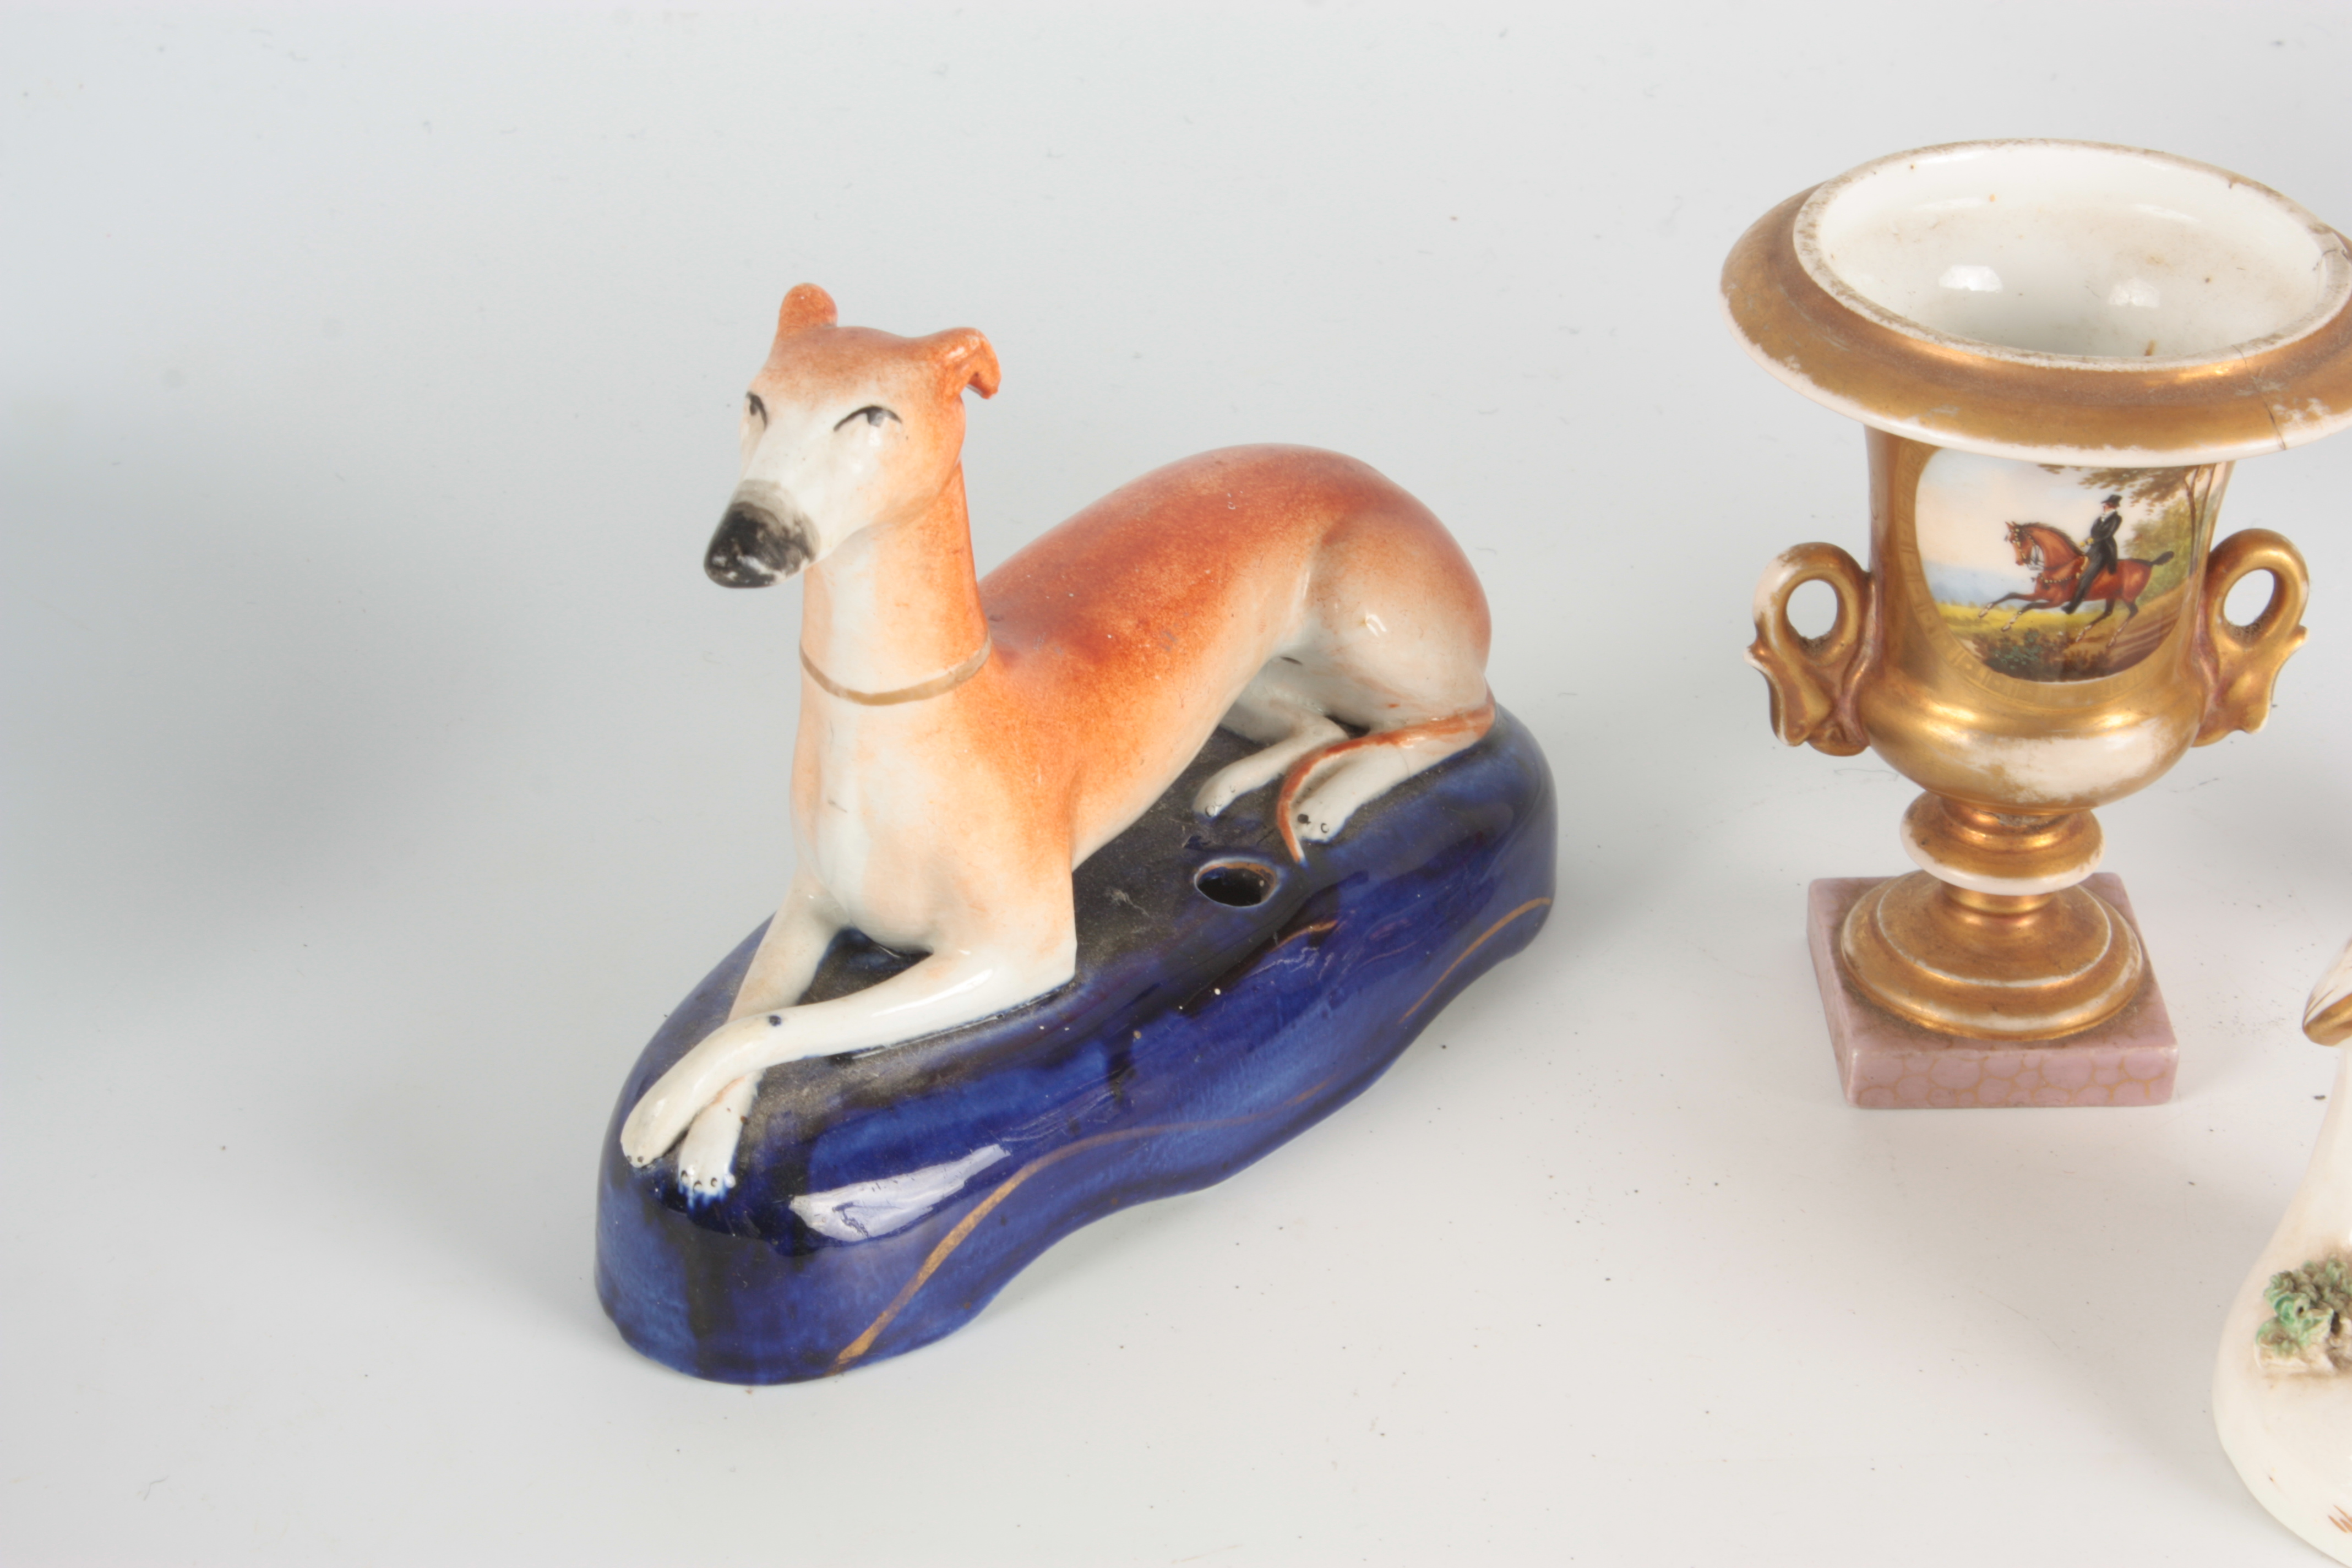 A 19TH CENTURY STAFFORDSHIRE FIGURE depicting a seated piper with dog at foot 12.5cm high A - Image 2 of 6